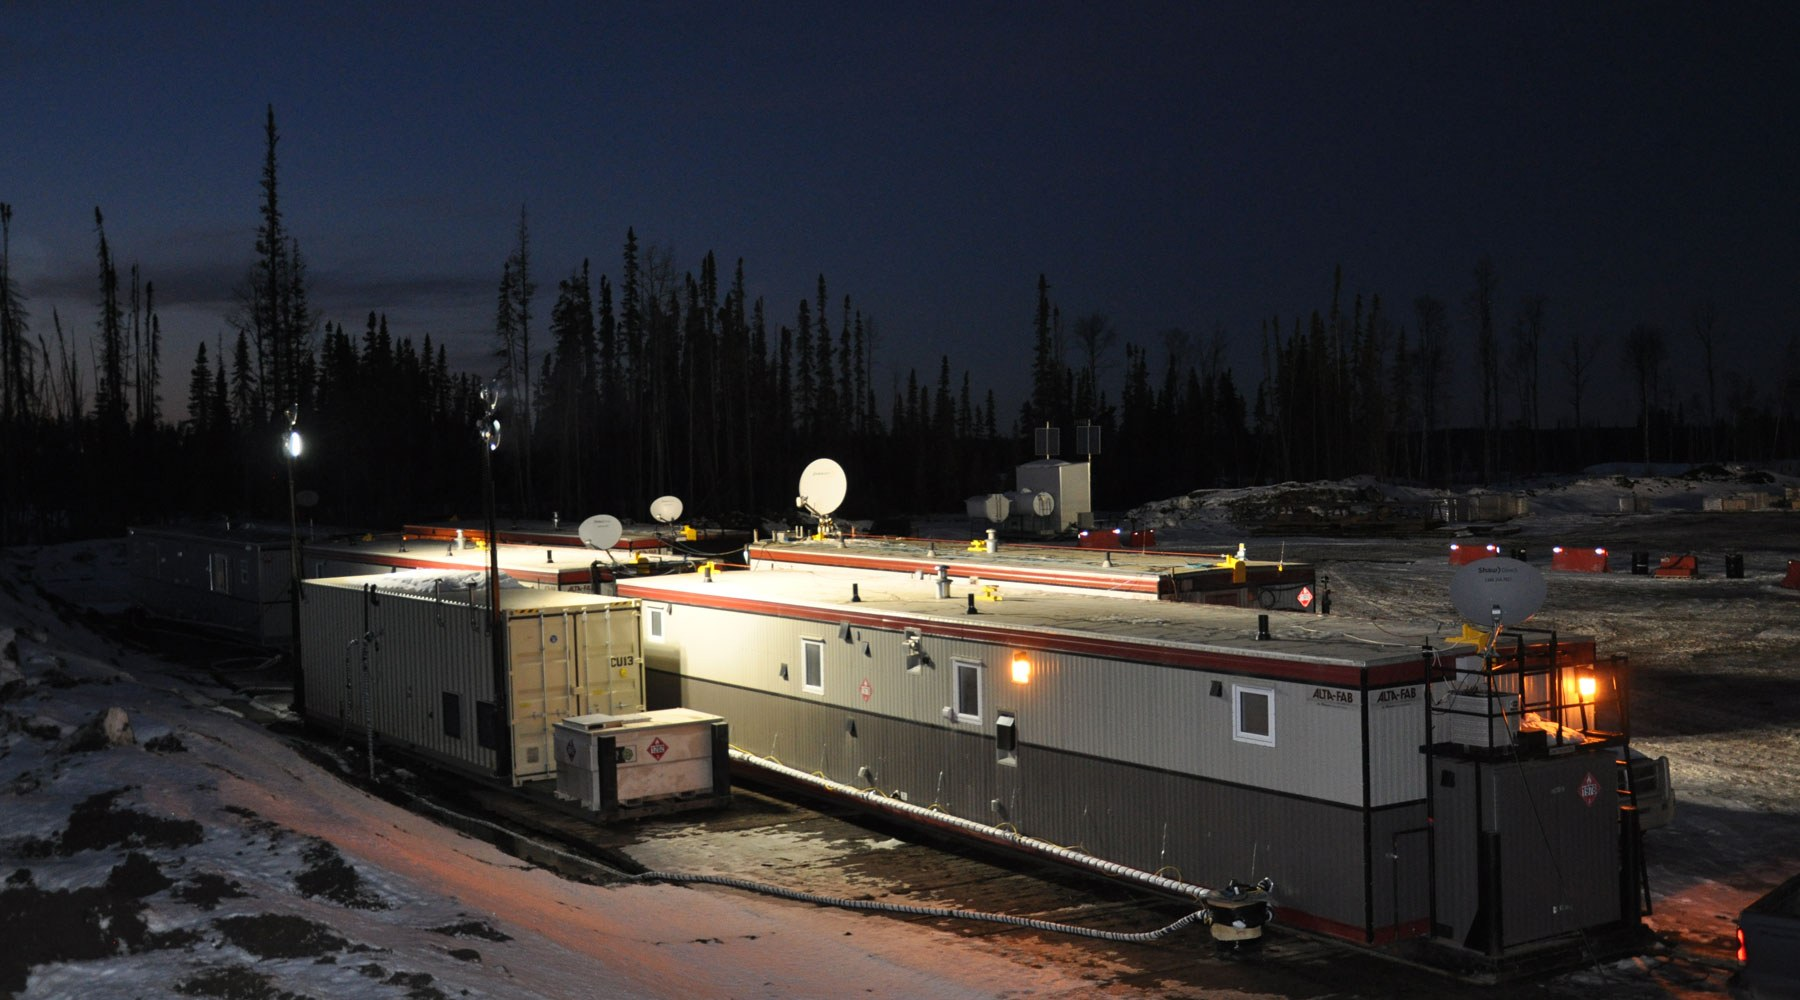 A work camp photographed at night